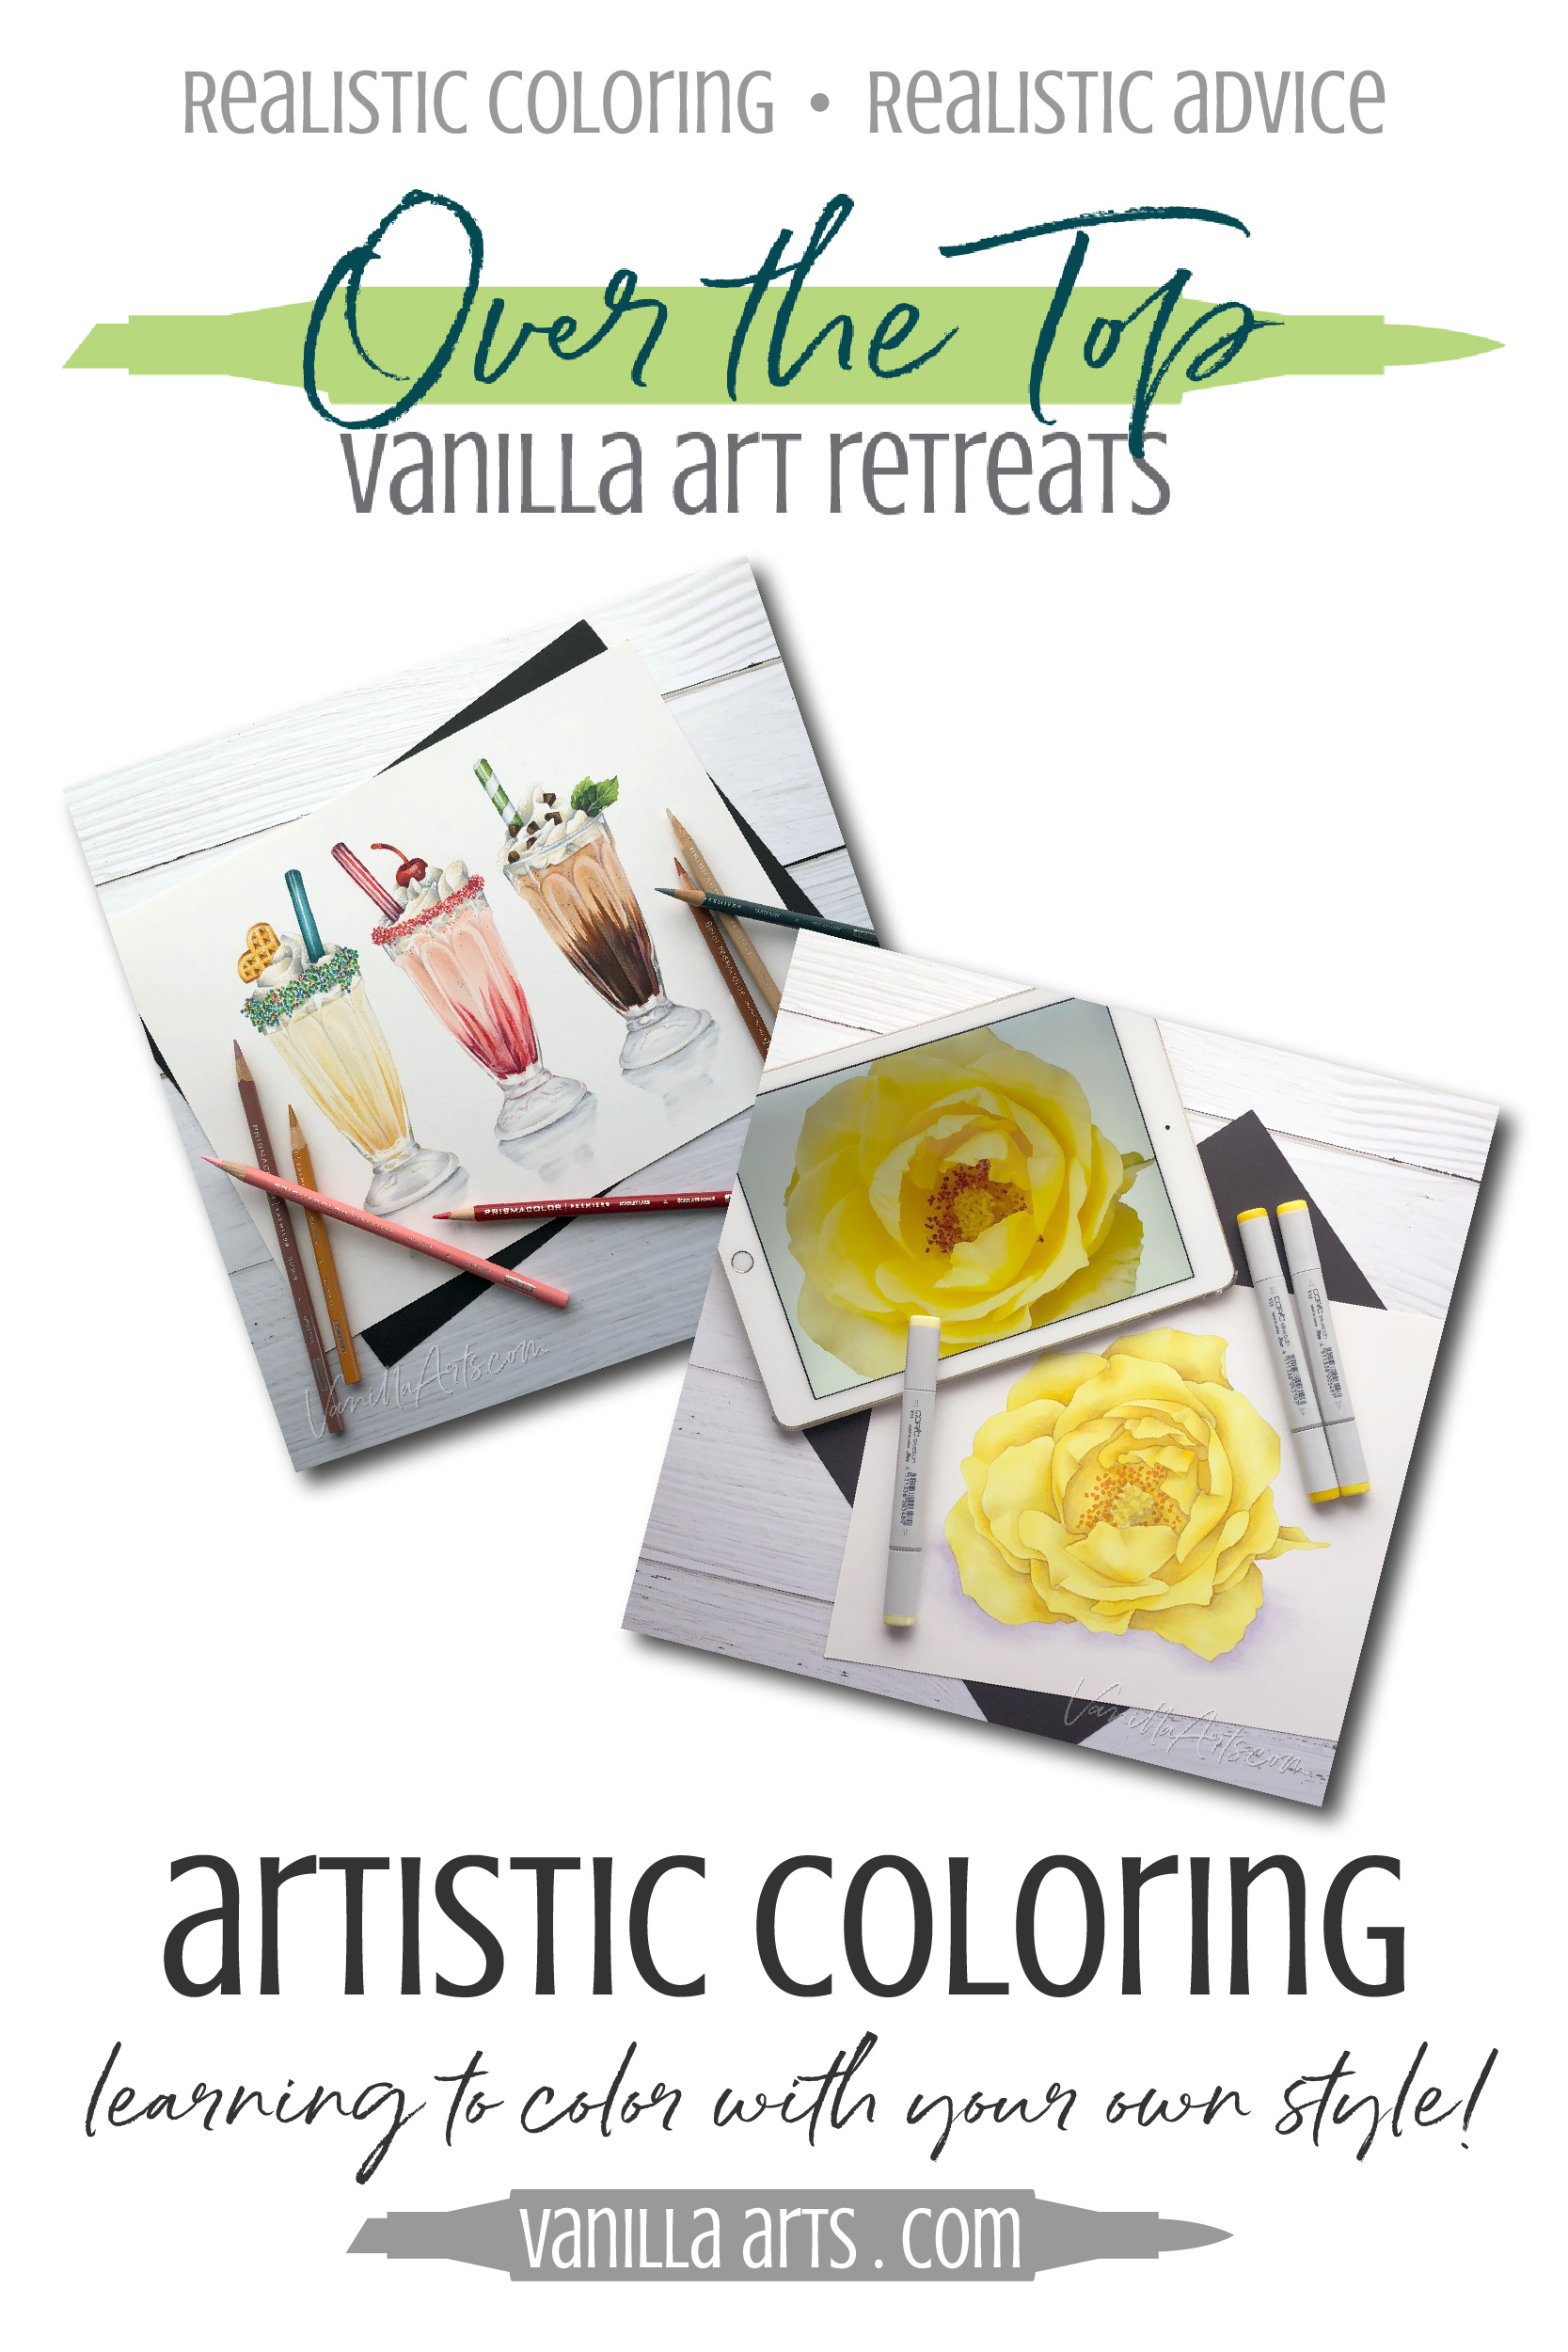 Learn to color with your own unique style using Copic Markers and Prismacolor Colored pencils. Intermediate to advanced level lessons at the Over the Top Copic Artist's Retreat by VanillaArts.com | #adultcoloring #copicmarkers #realisticcoloring